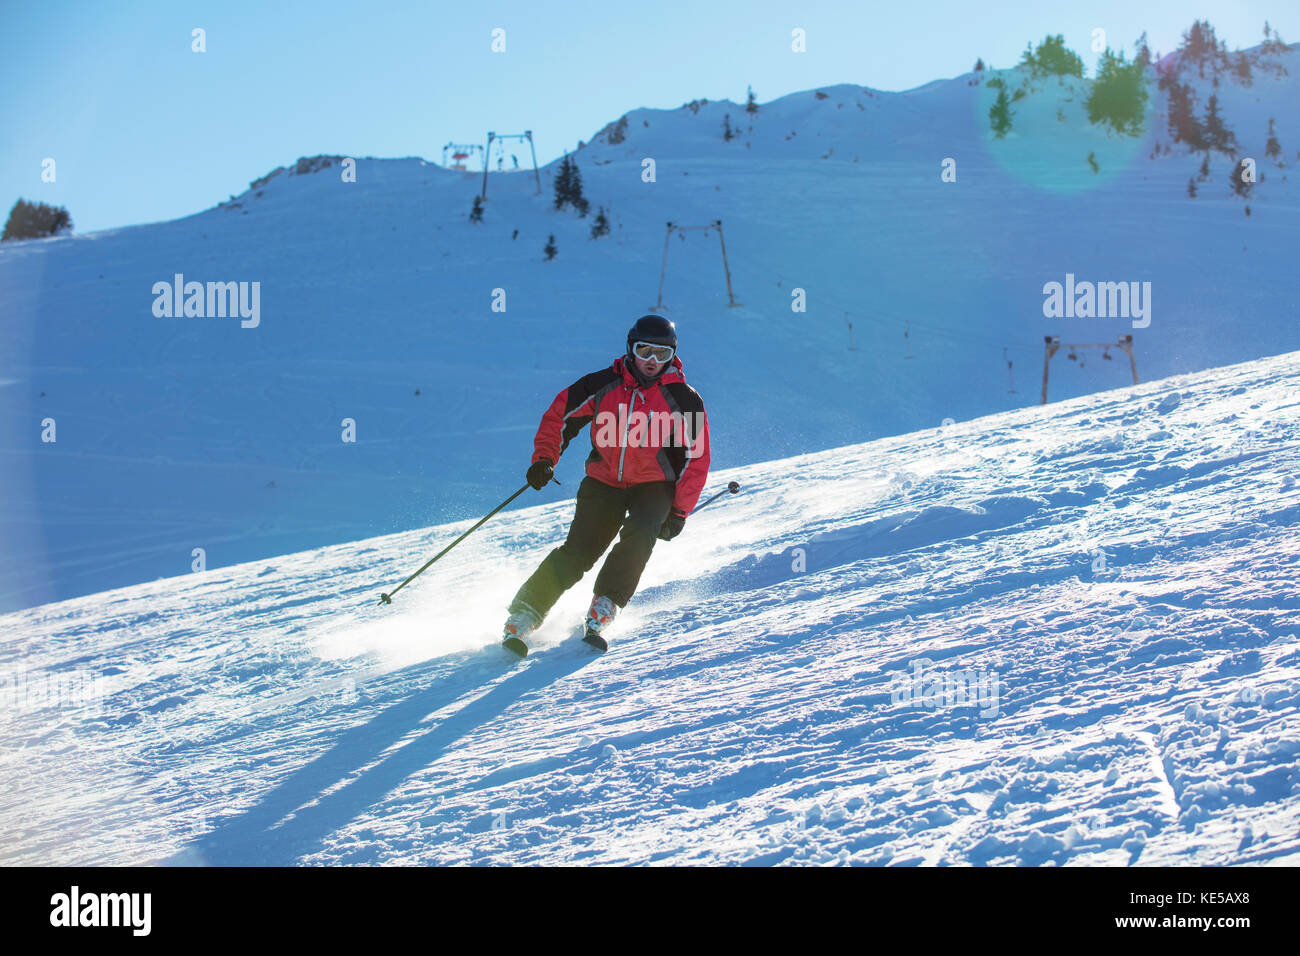 Skier skiing downhill in high mountains against sunset - Stock Image